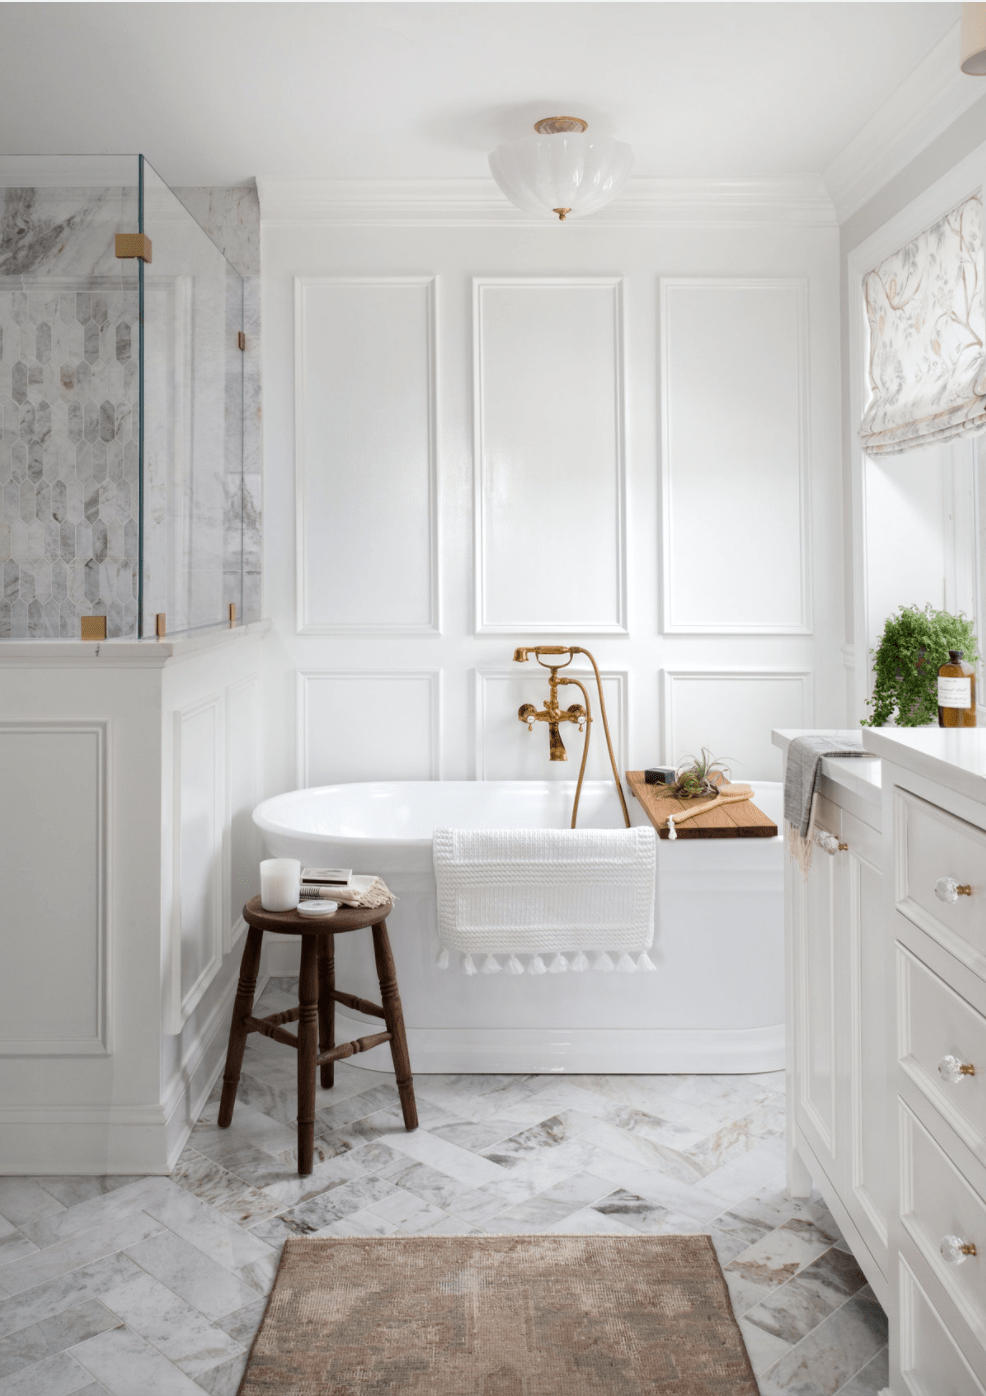 picture frame molding in a bathroom with soaking tub and herringbone tile